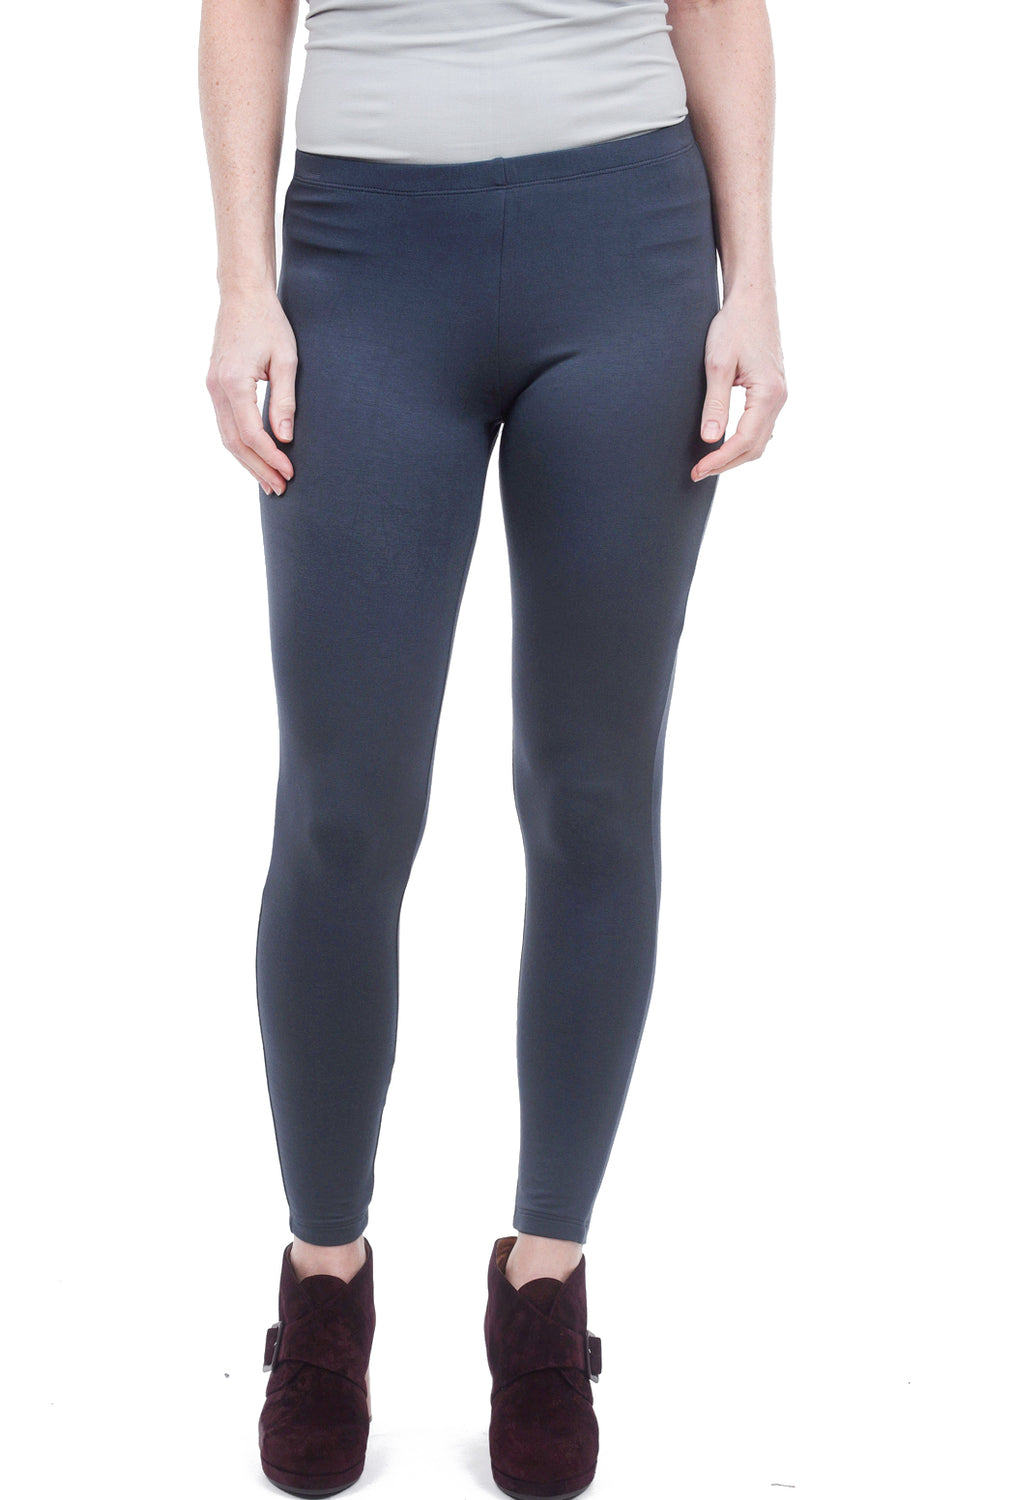 Comfy USA Comfy Basic Long Legging, Charcoal